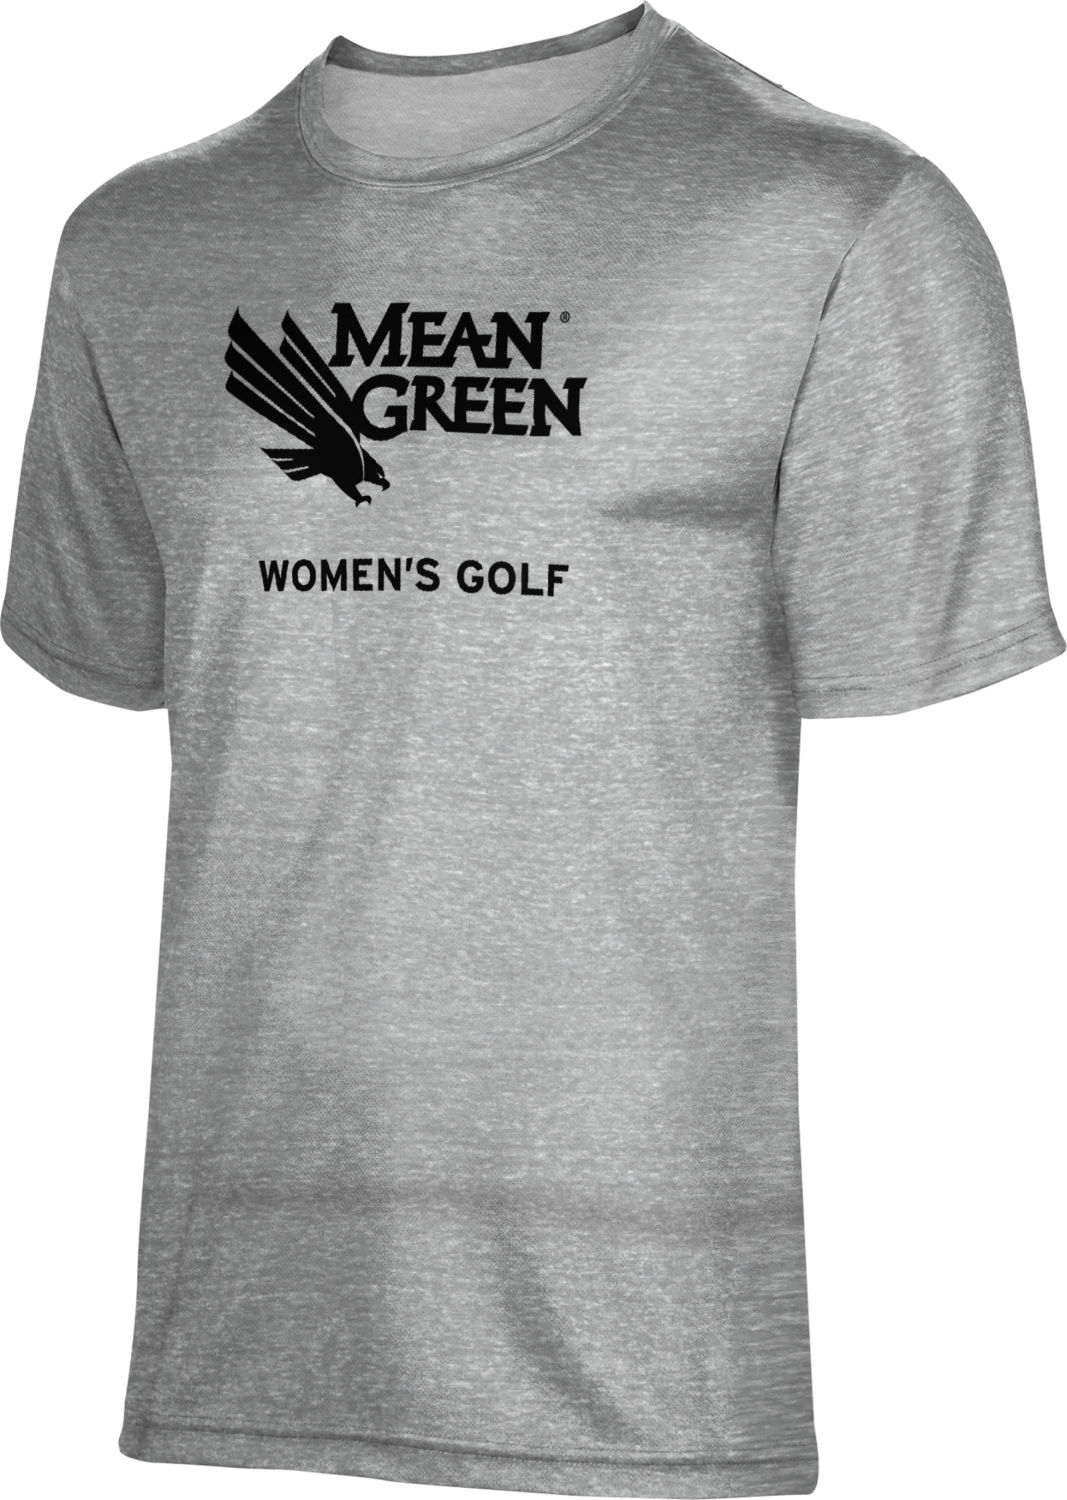 ProSphere Women's Golf Unisex TriBlend Distressed Tee